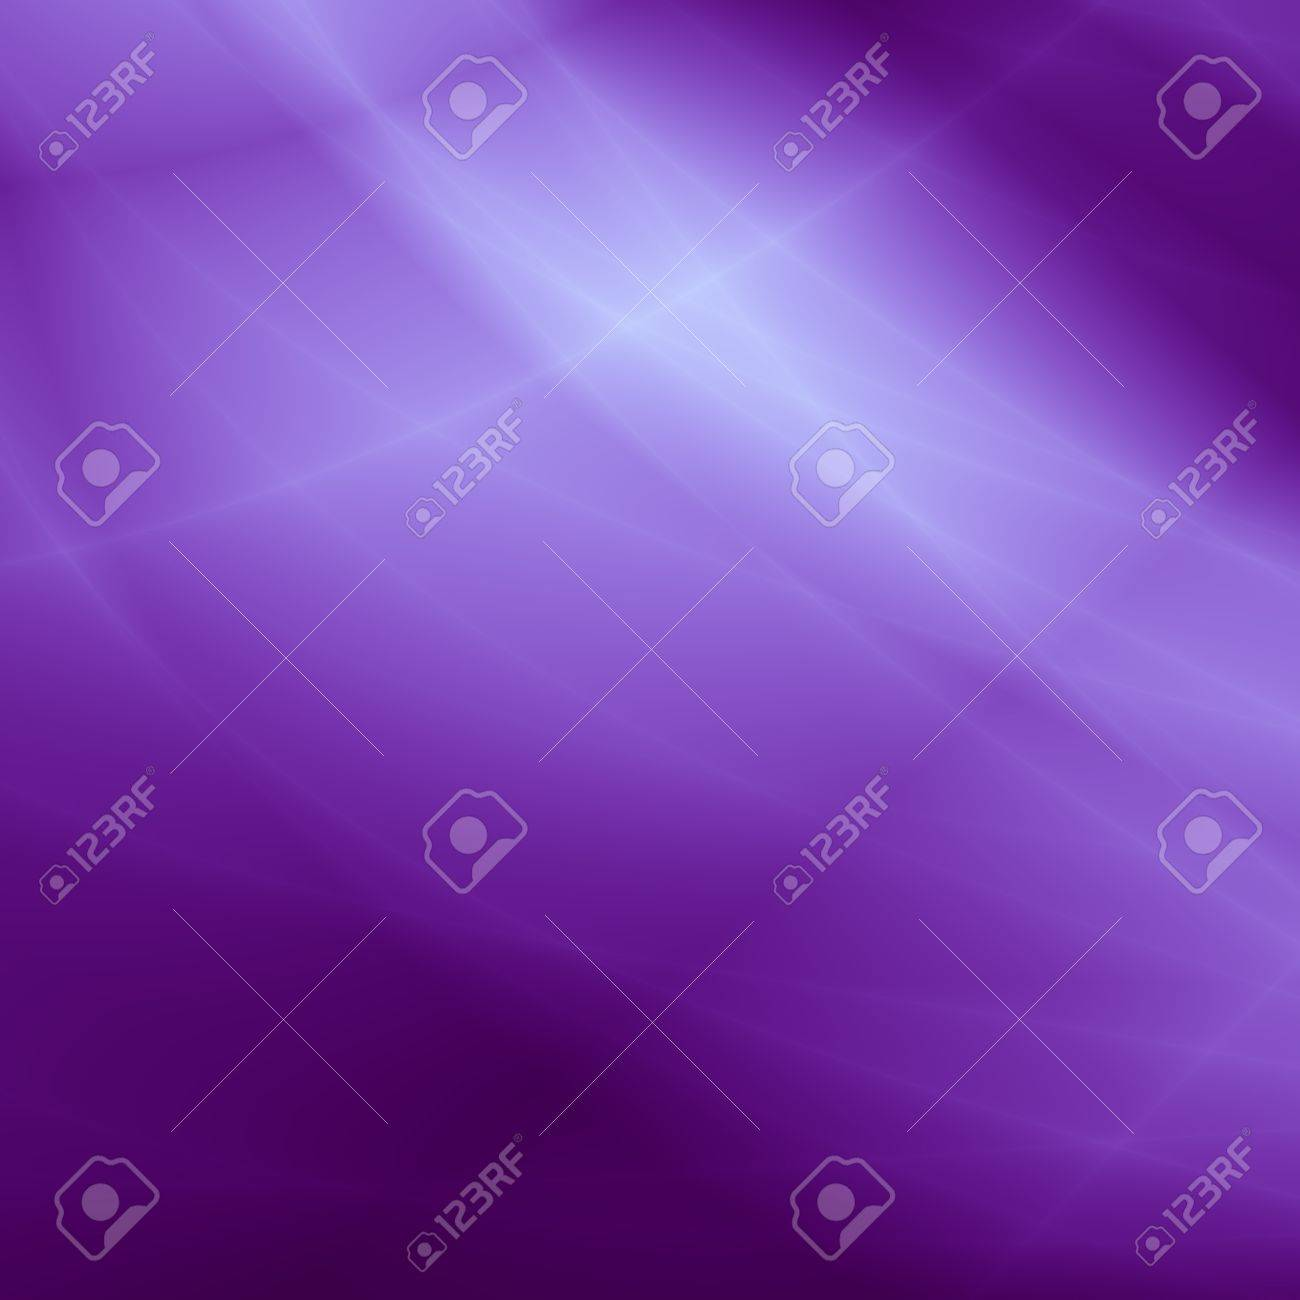 Purple Light Abstract Wallpaper Design